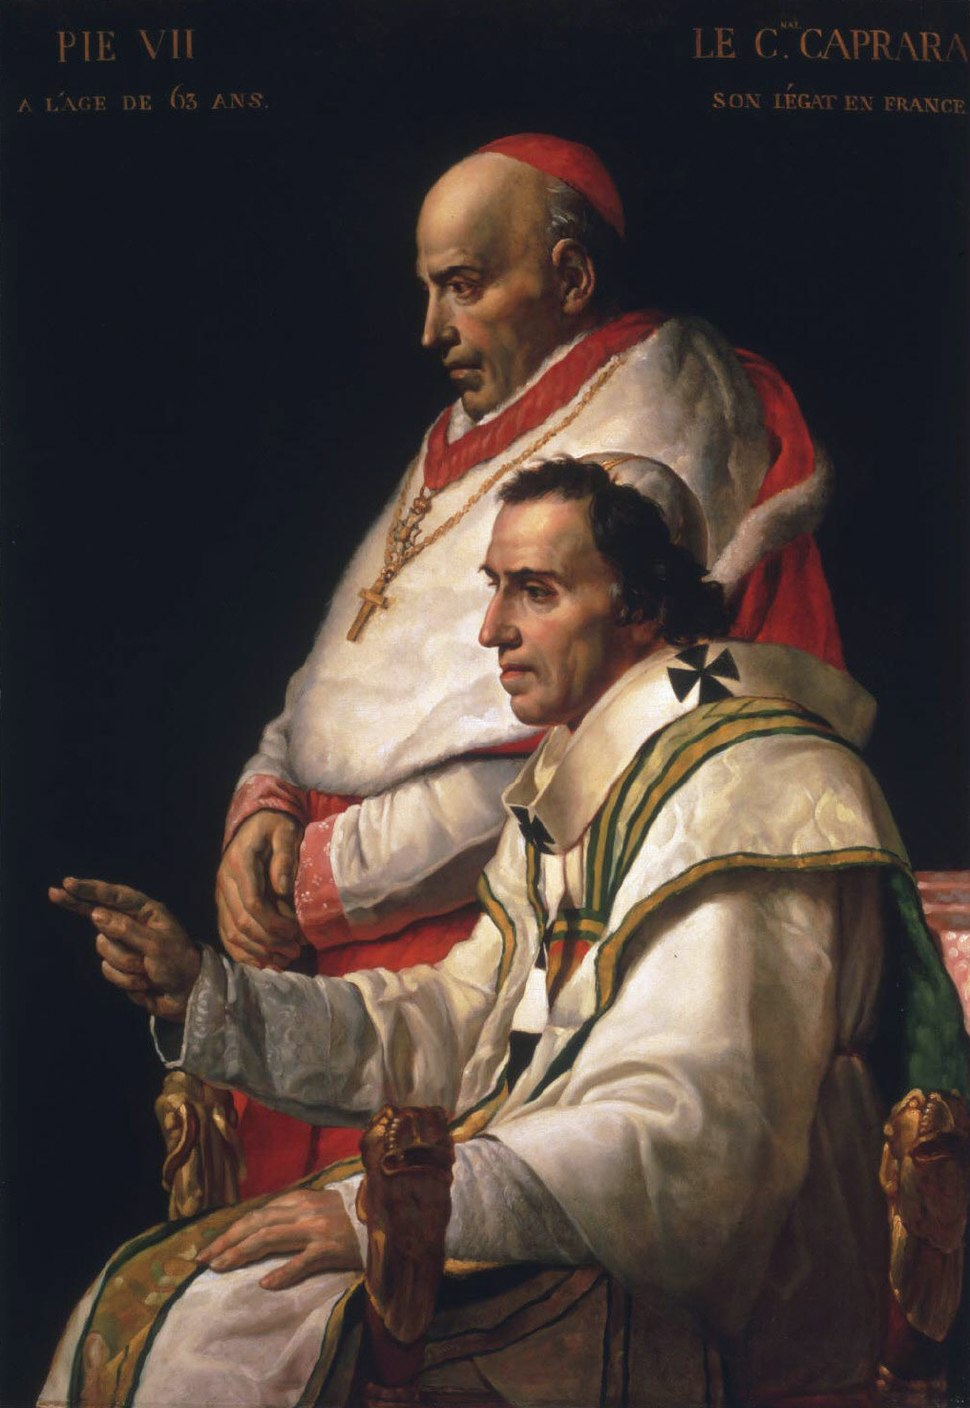 Portrait of Pope Pius VII and Cardinal Caprara by Jacques-Louis David